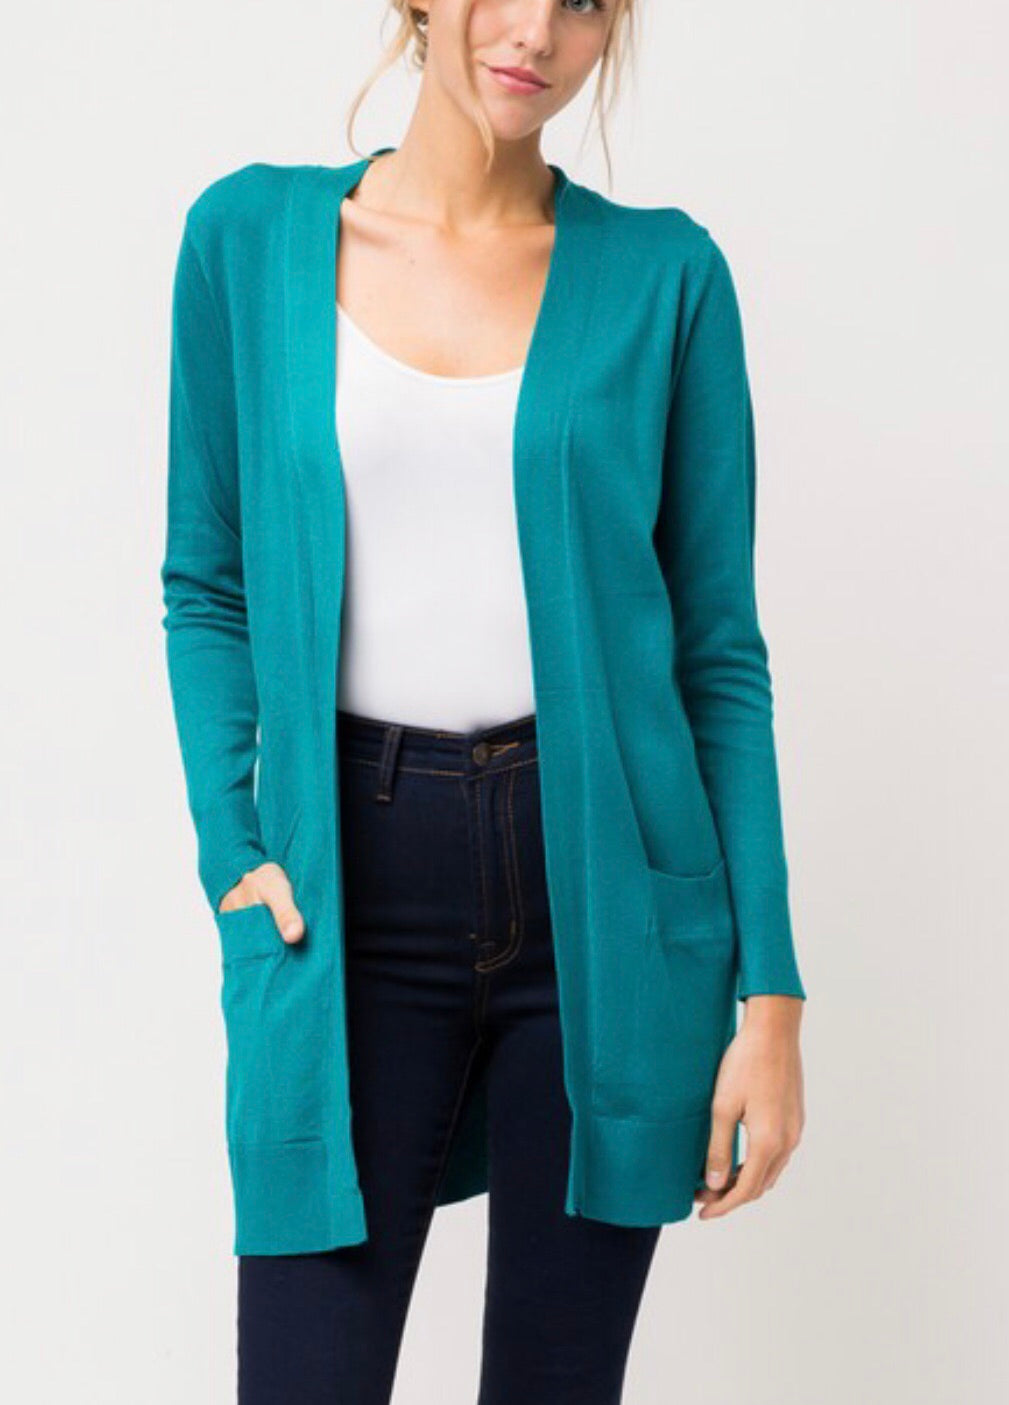 Mid Thigh Length Cardigan in Teal Green